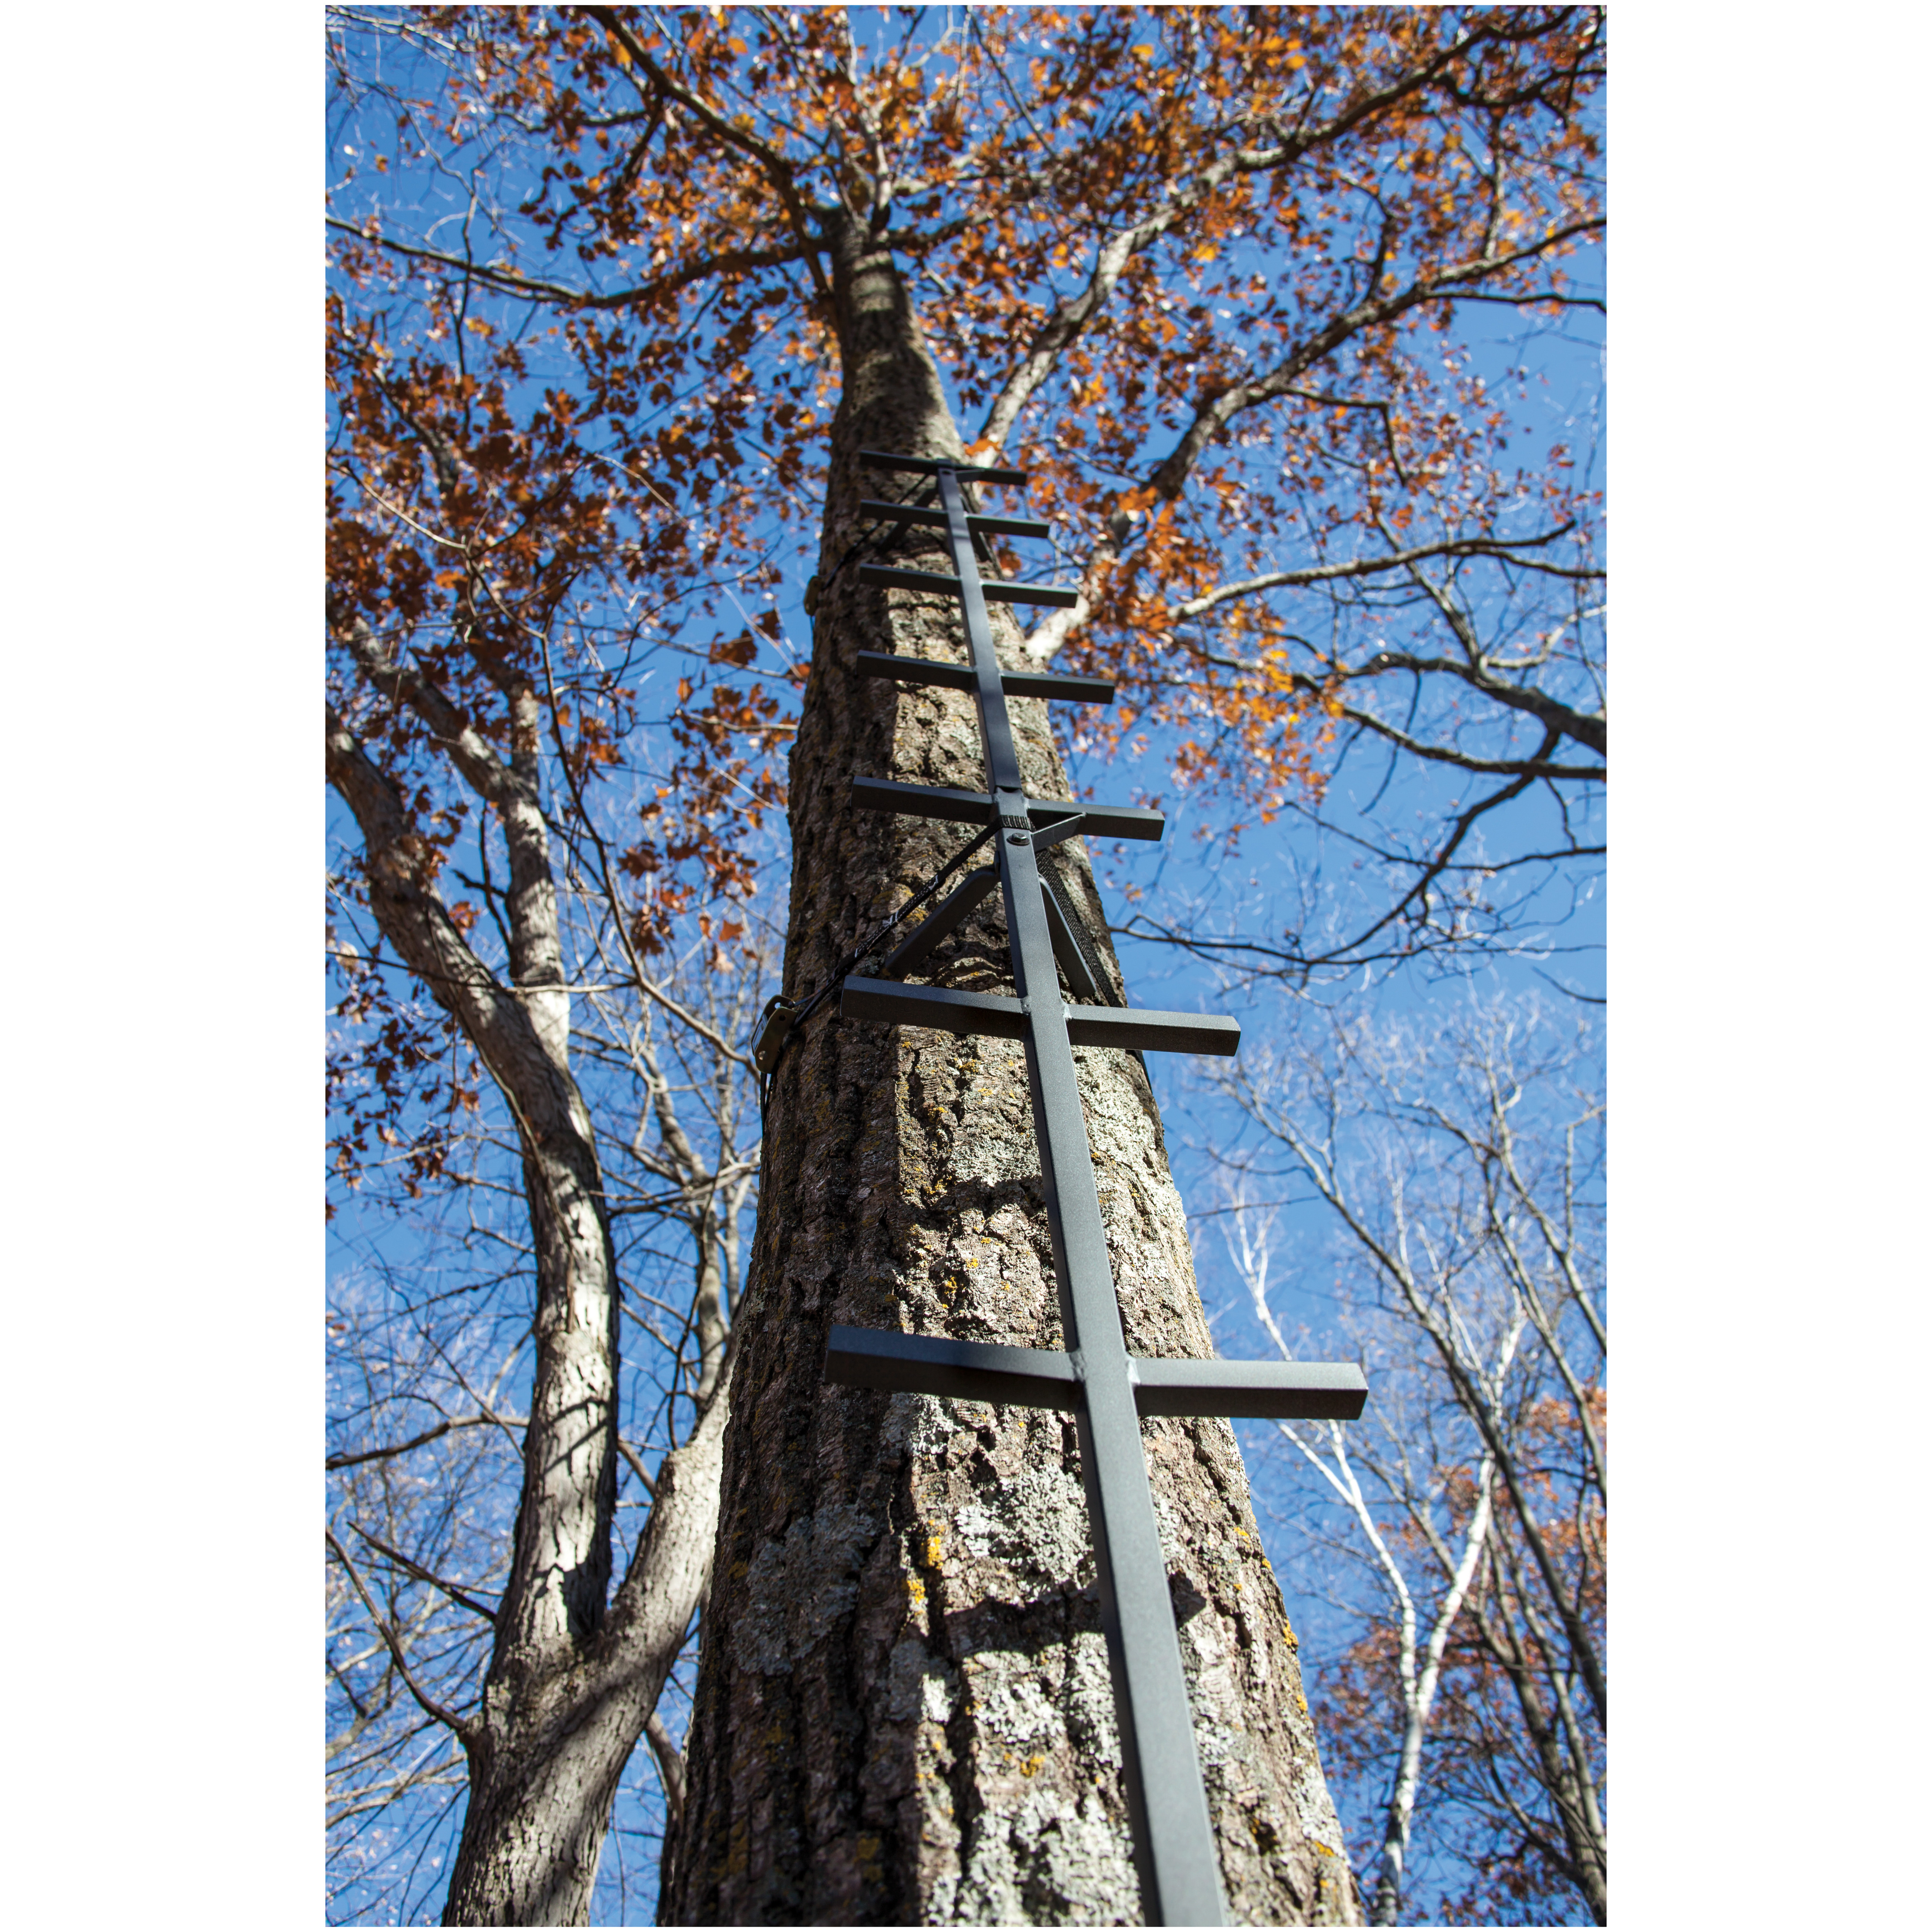 "Rivers Edge 20' Connect-N-Climb Climbing Stick. Quickly climb into your hang-on tree stand! Quick access to your hang-on tree stand! Easily climb into your tree stand with this 20' Connect-N-Climb Climbing stick. Fully connected and offers 20' of climbing height. Constructed of metal with a non-slip coating so you can rest assured climbing into your tree stand will be safe, easy and secure. Features:Compact and easy to transport 2 steps at each level for easy climbing Non-slip coating on each step for safety 300-lb. weight capacity 11"" step width 15"" distance between each step for safe climbing Measures 20' h. overall, weighs 22 lbs. - $99.99"